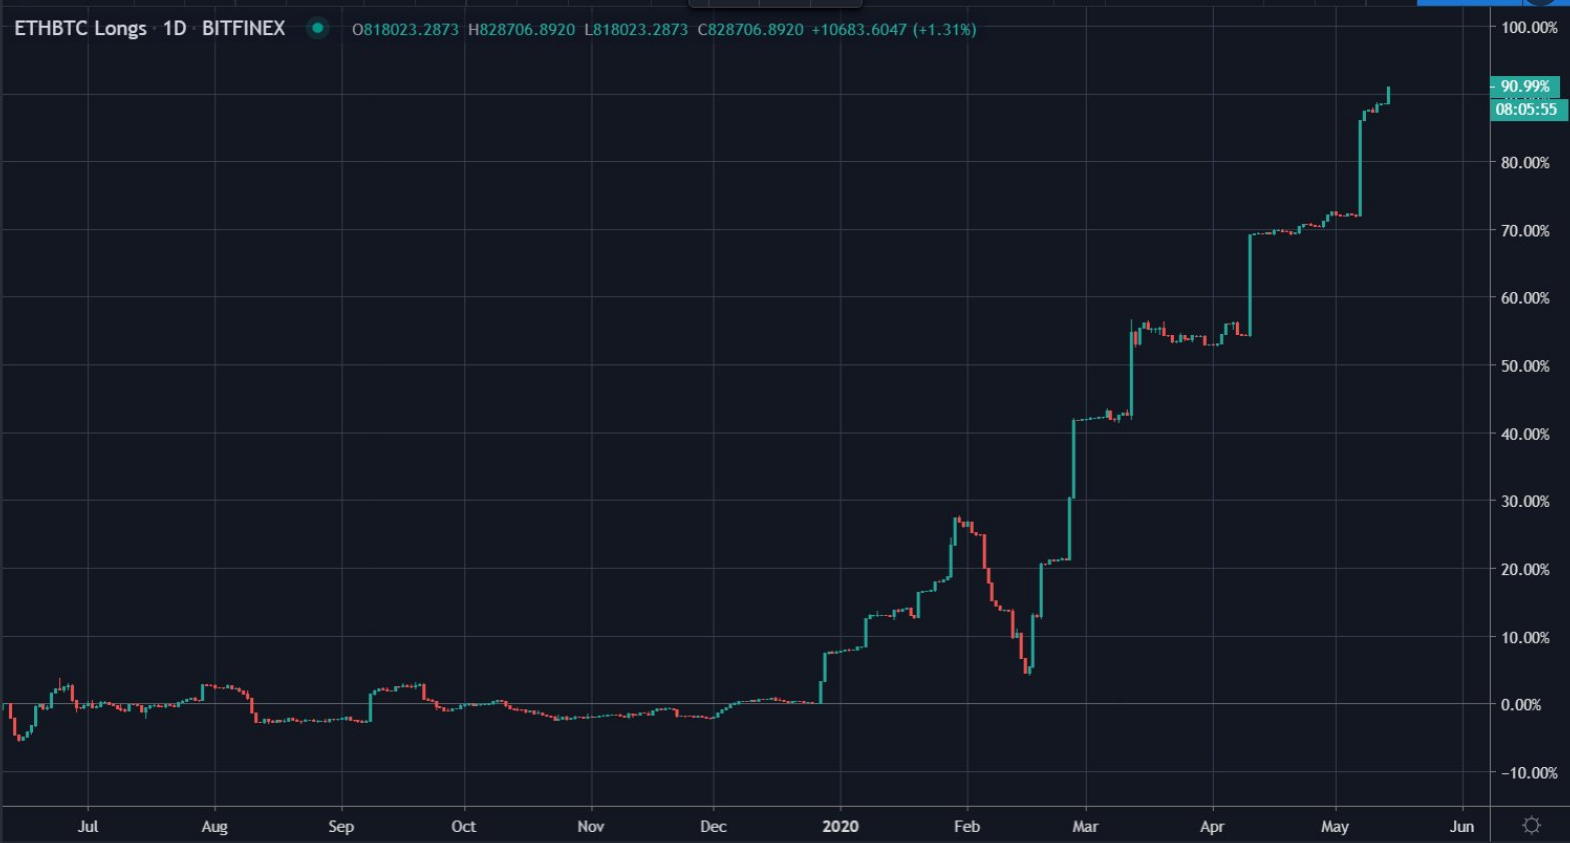 Bitfinex ETH Longs at 90%